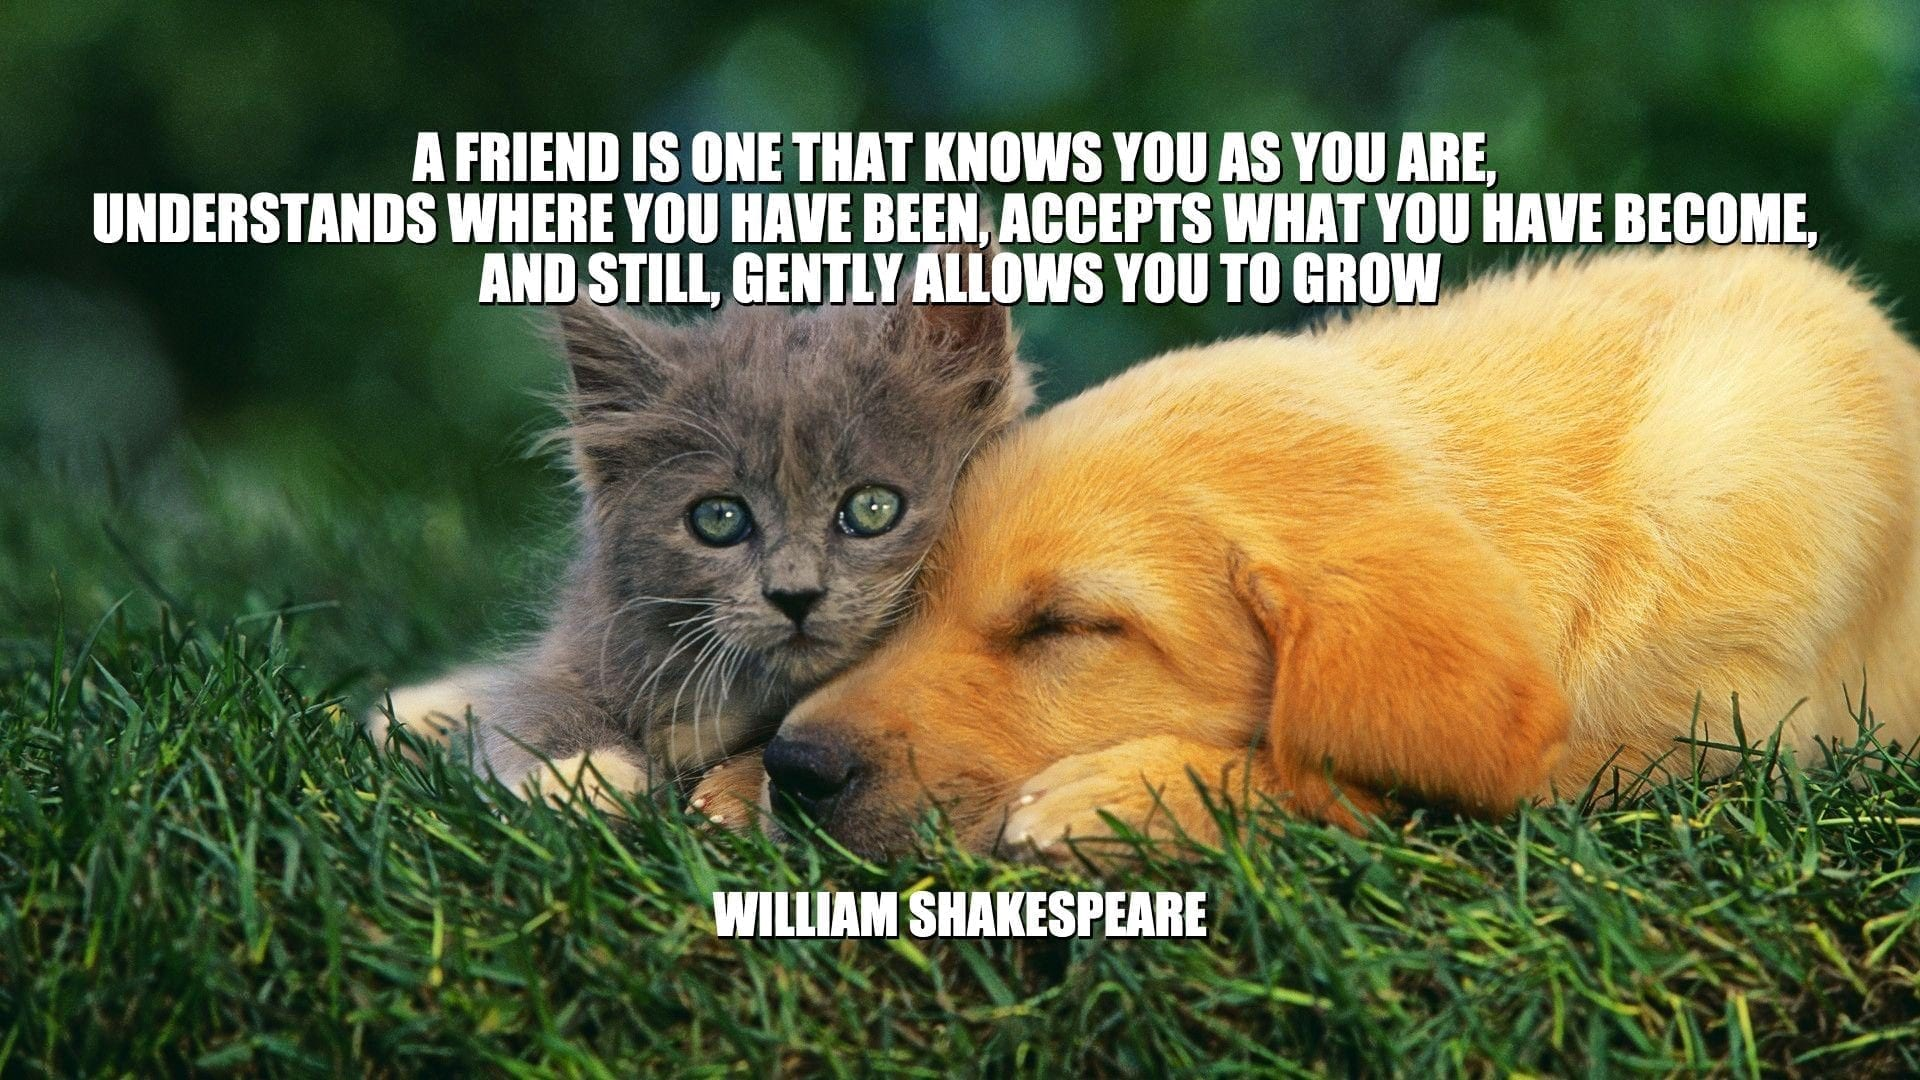 Daily Quotes: A Friend Is One That Knows You As You Are, Understands Where You Have Been, Accepts What You Have Become, And Still, Gently Allows You To Grow petworldglobal.com